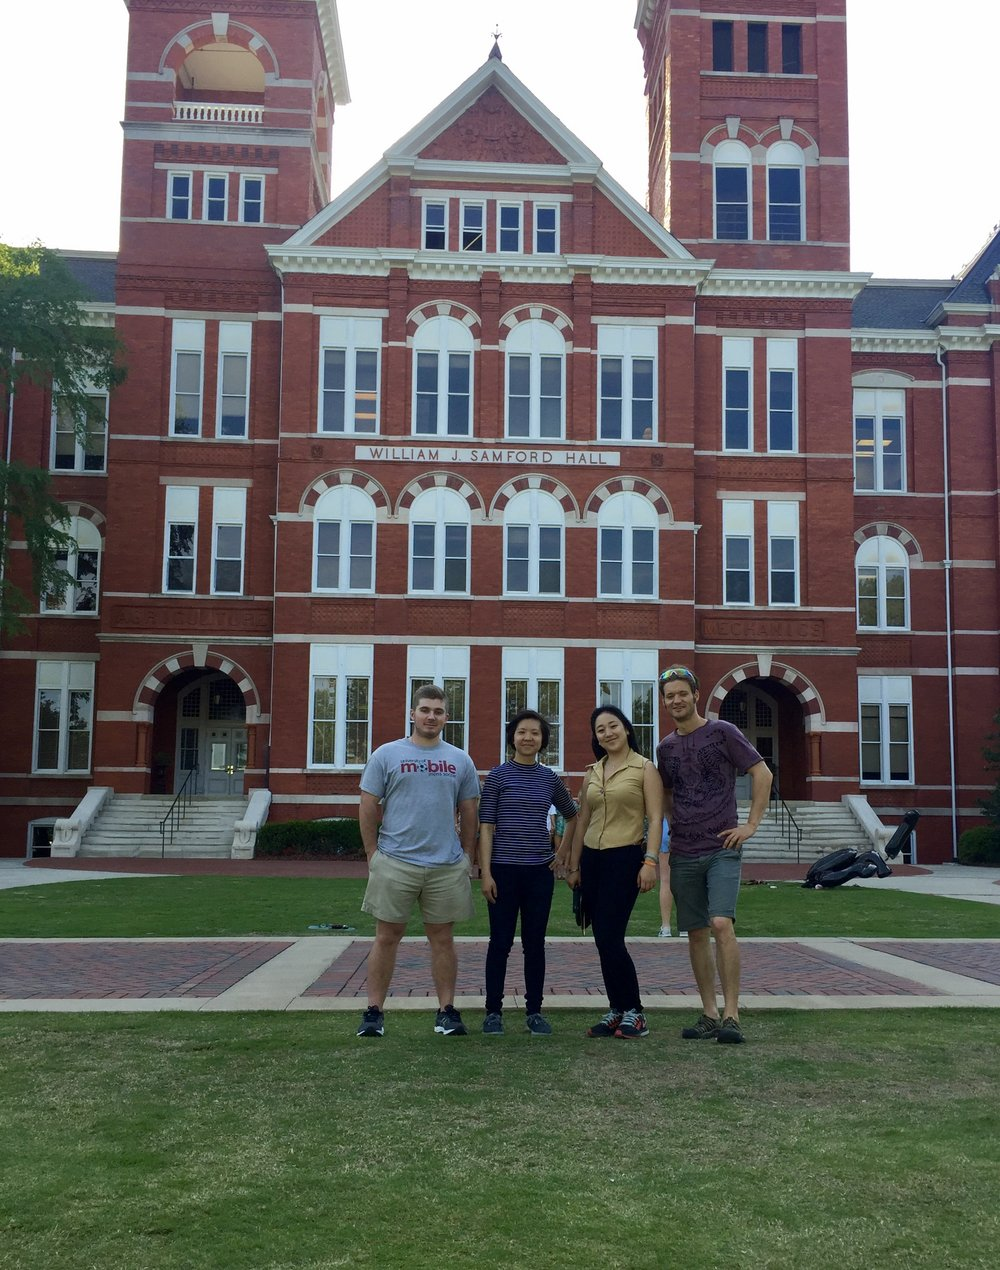 Left to right: DJ, Janet, Evadora, Karl. Outside Auburn University's Samford Hall.